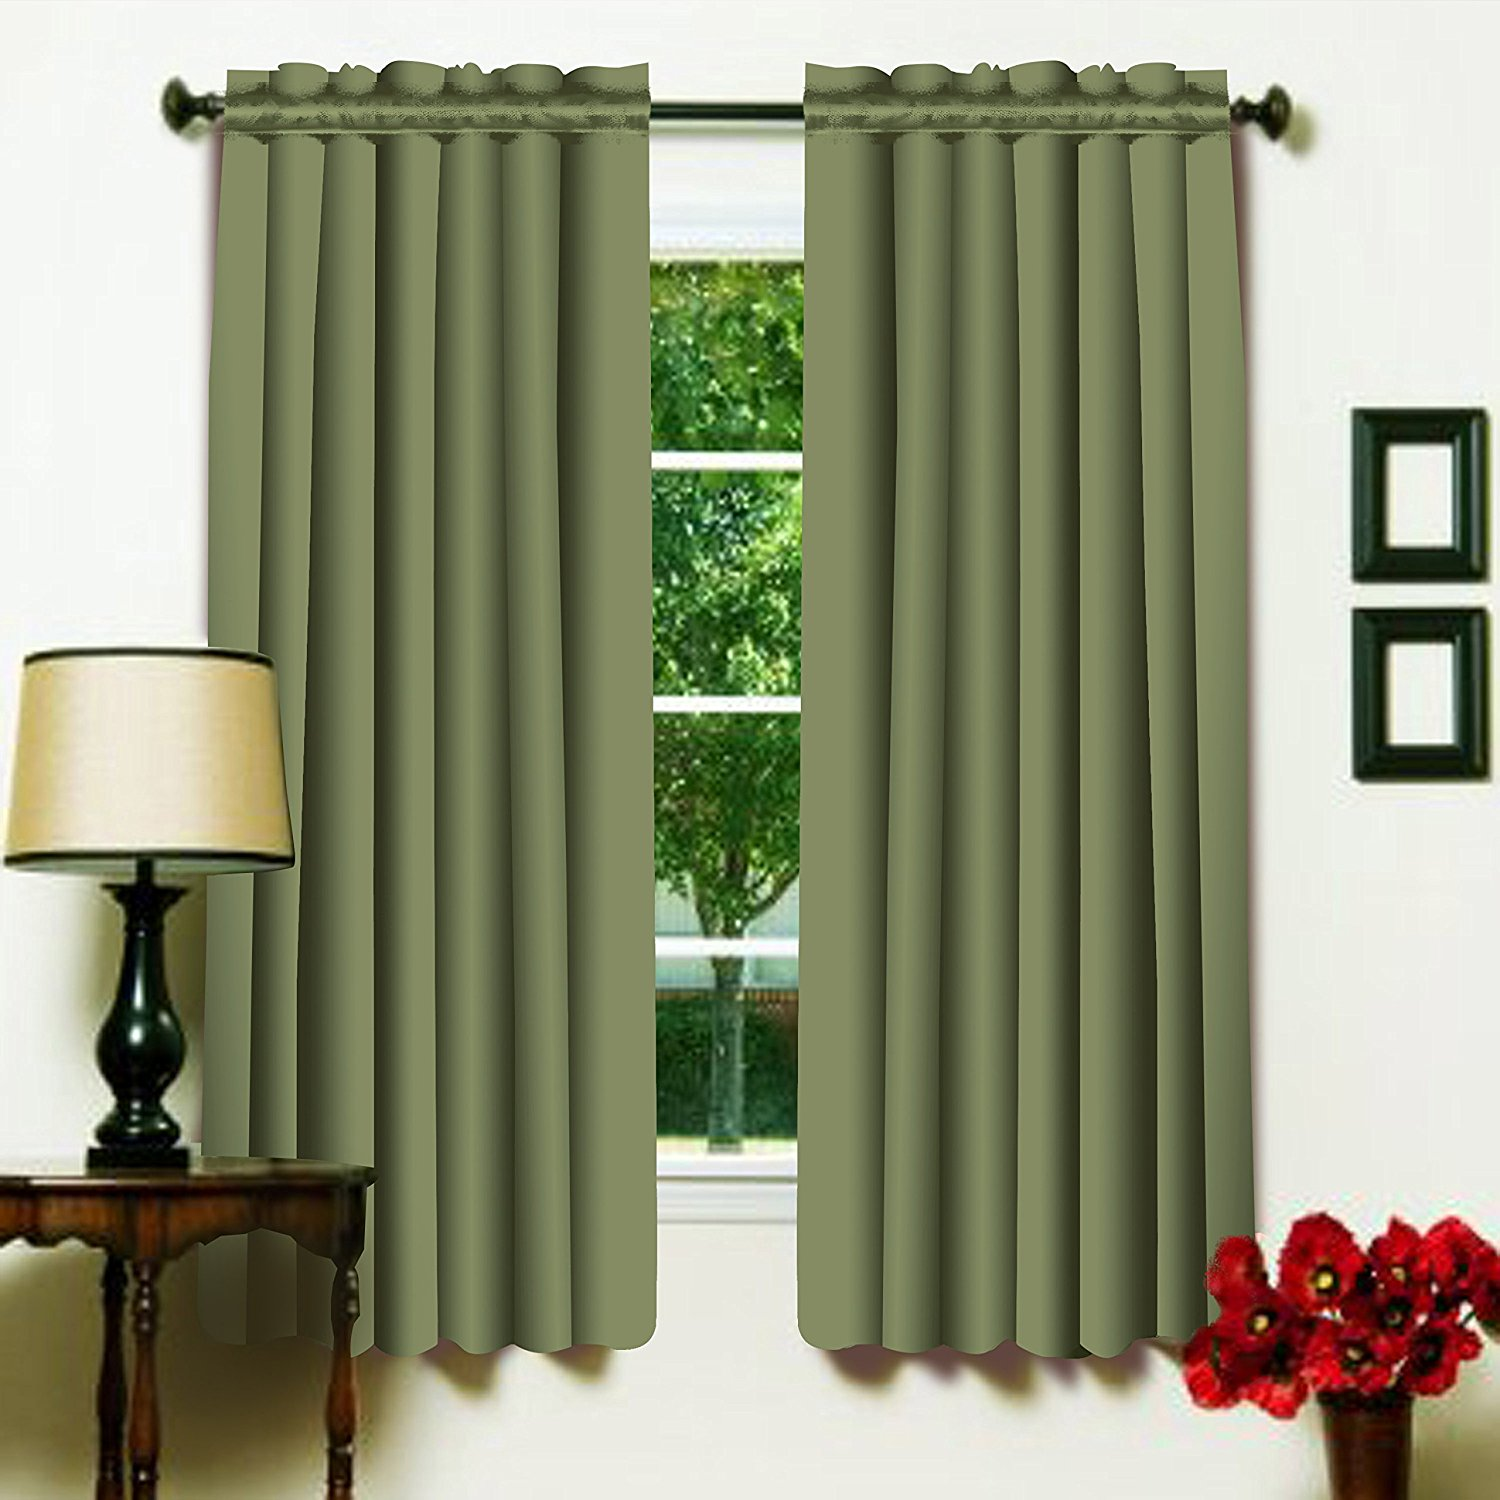 Olive Color 52 x 63 Solid Thermal Insulated Blackout Curtain